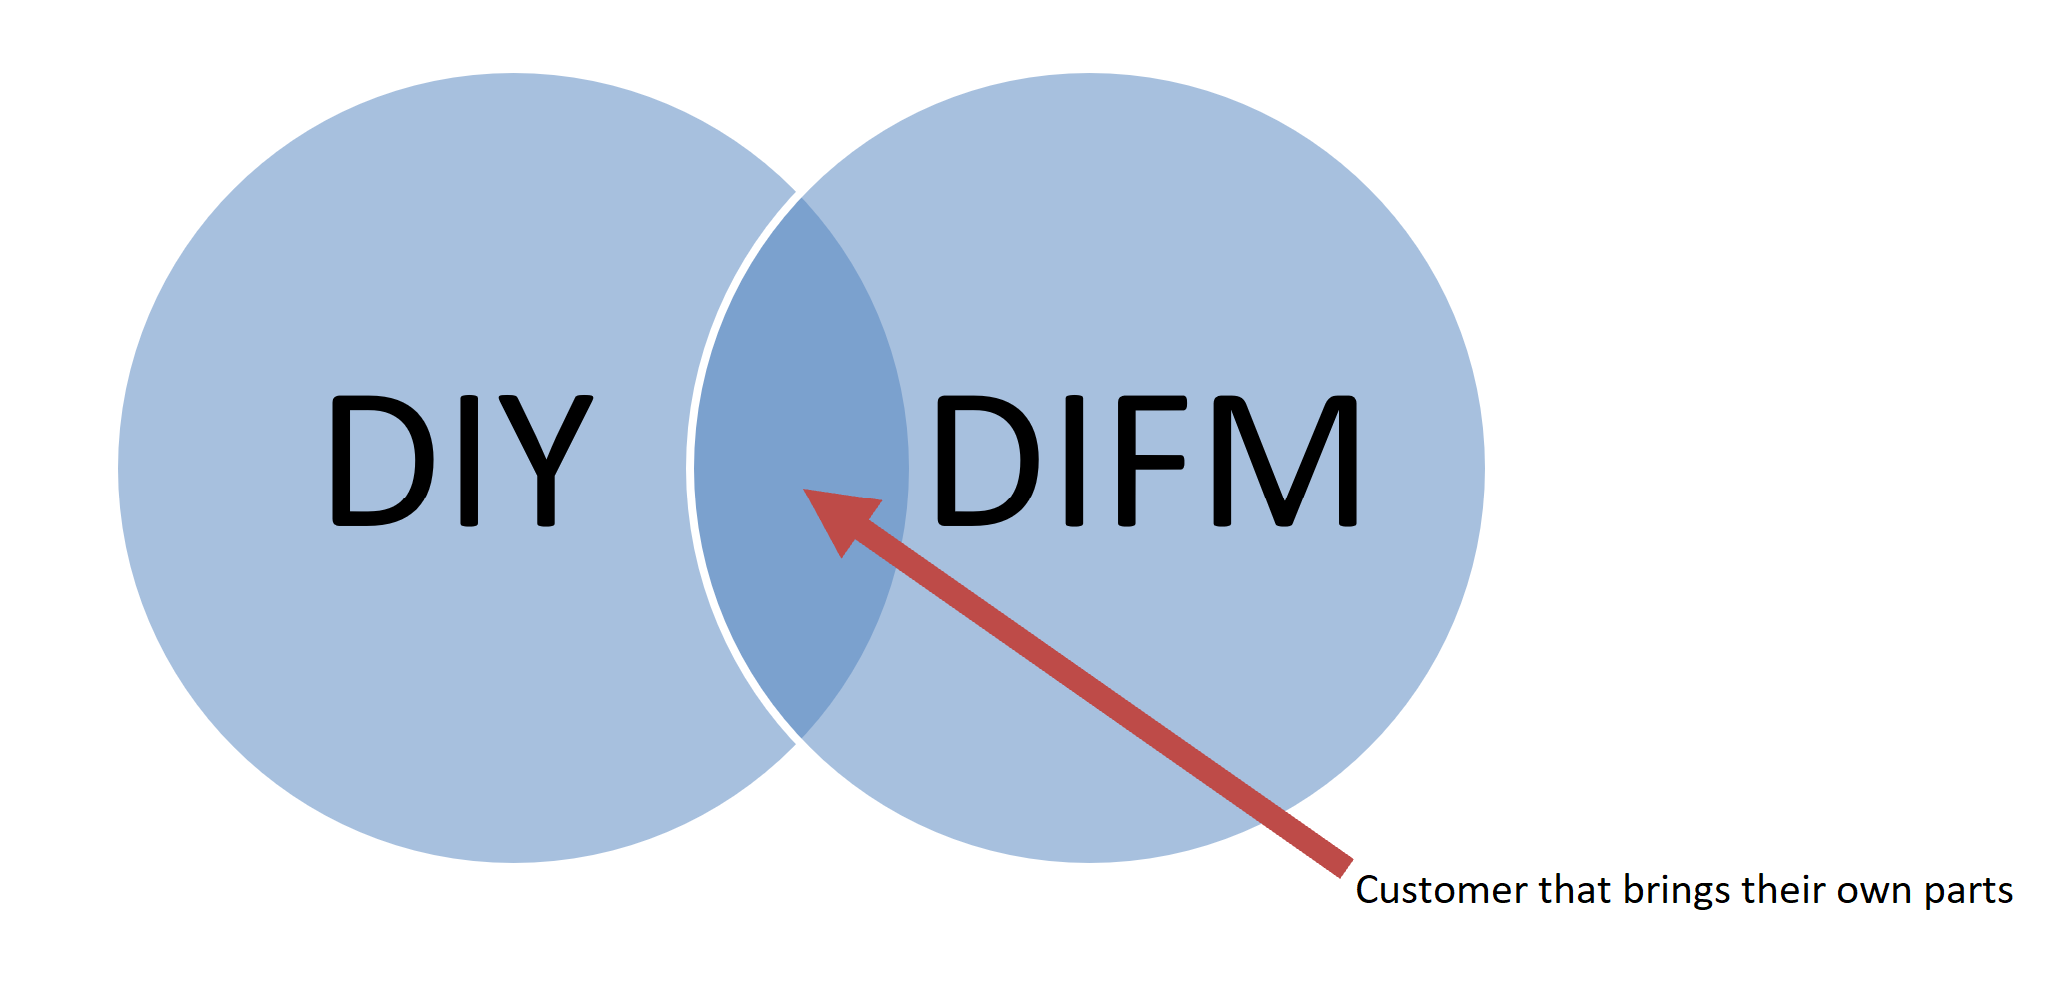 DIFM vs. DIY: How to Handle the In-Between Customer